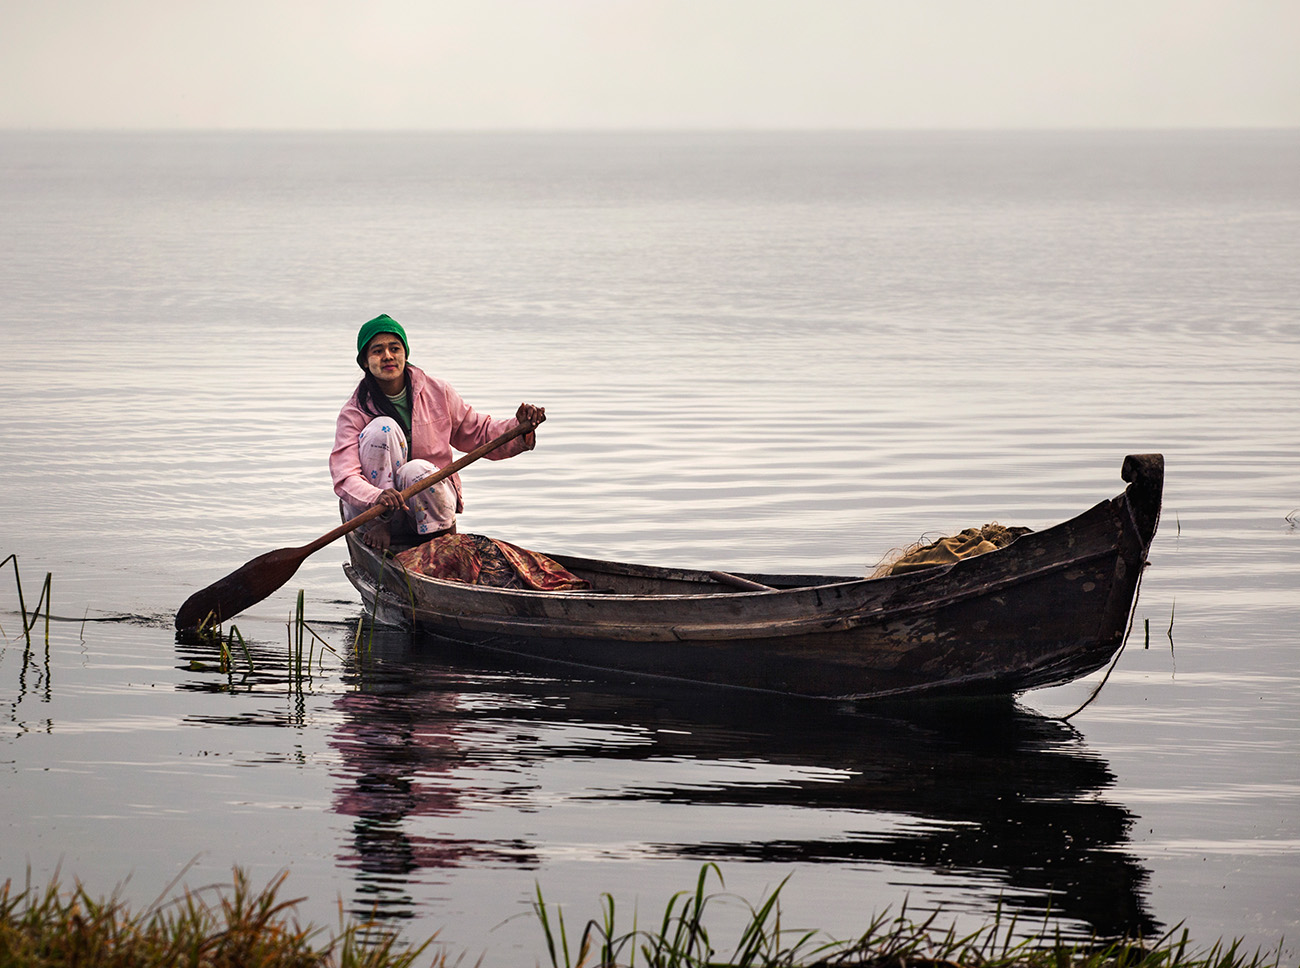 Girl returns from fishing in the morning